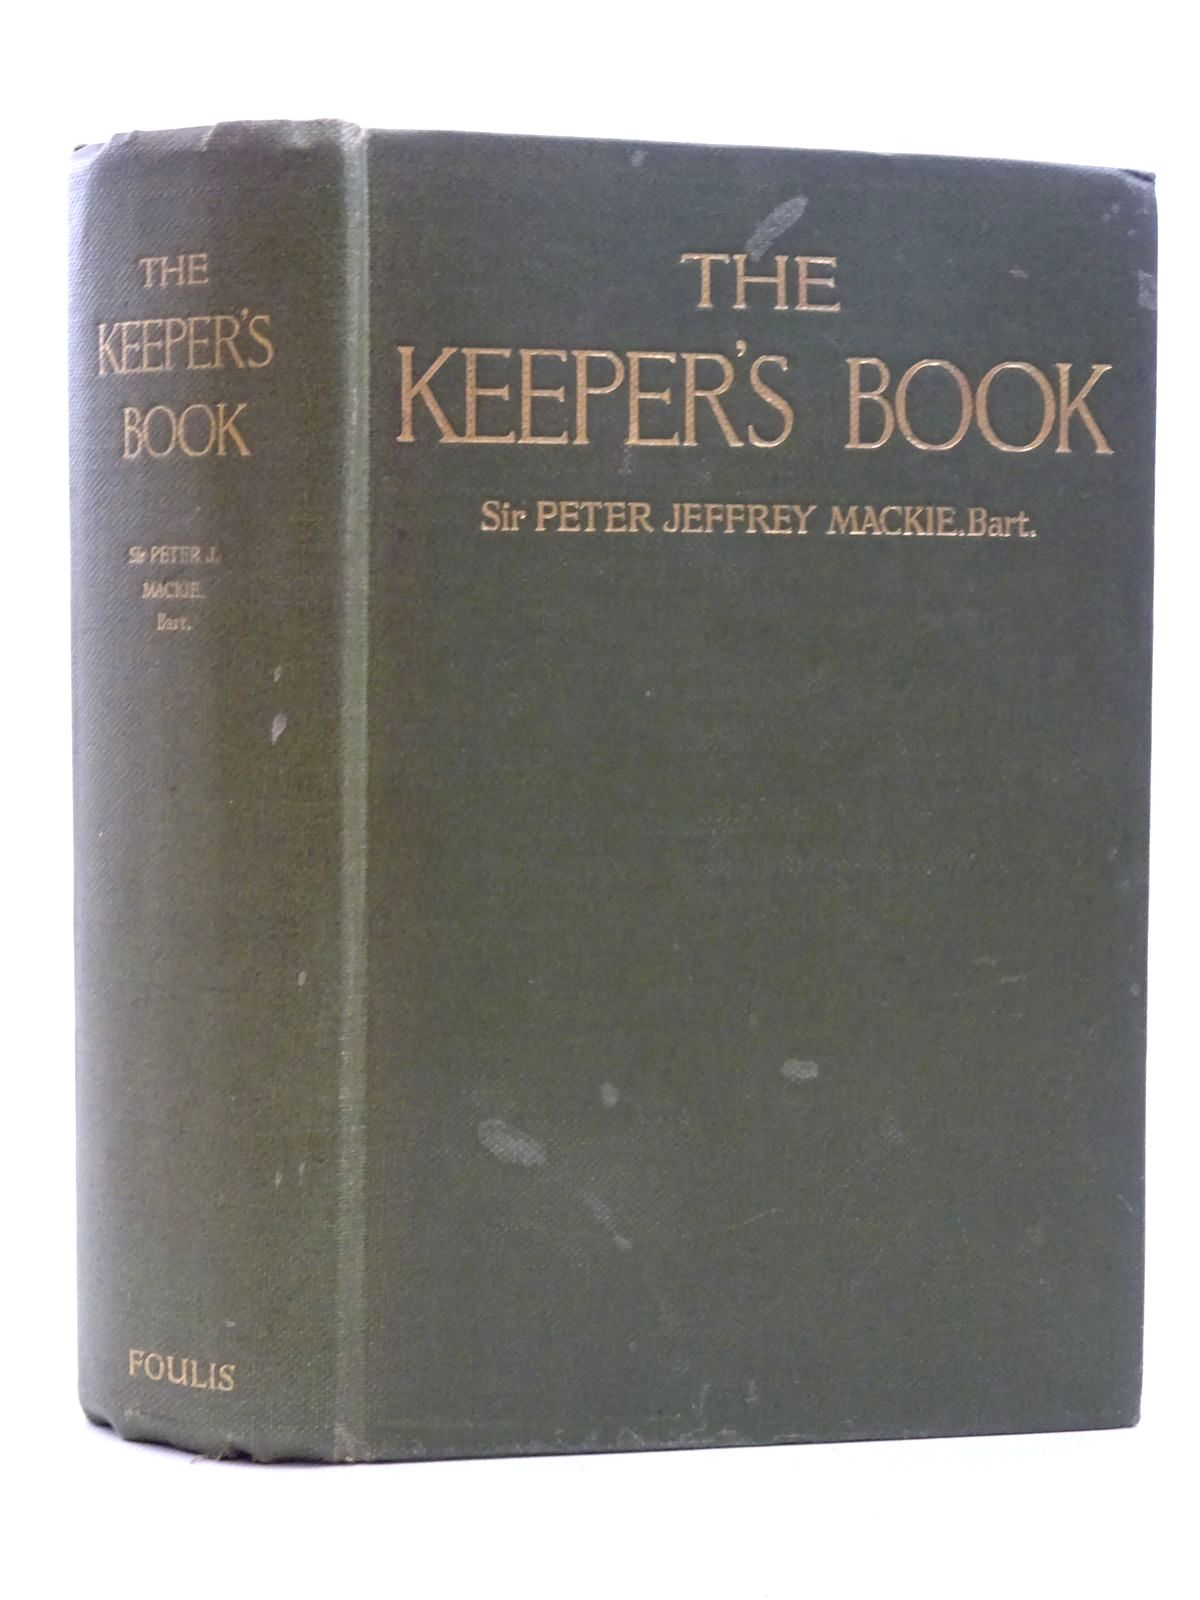 Photo of THE KEEPER'S BOOK A GUIDE TO THE DUTIES OF A GAMEKEEPER written by Mackie, Peter Jeffrey et al, published by G.T. Foulis & Co. Ltd. (STOCK CODE: 2125272)  for sale by Stella & Rose's Books